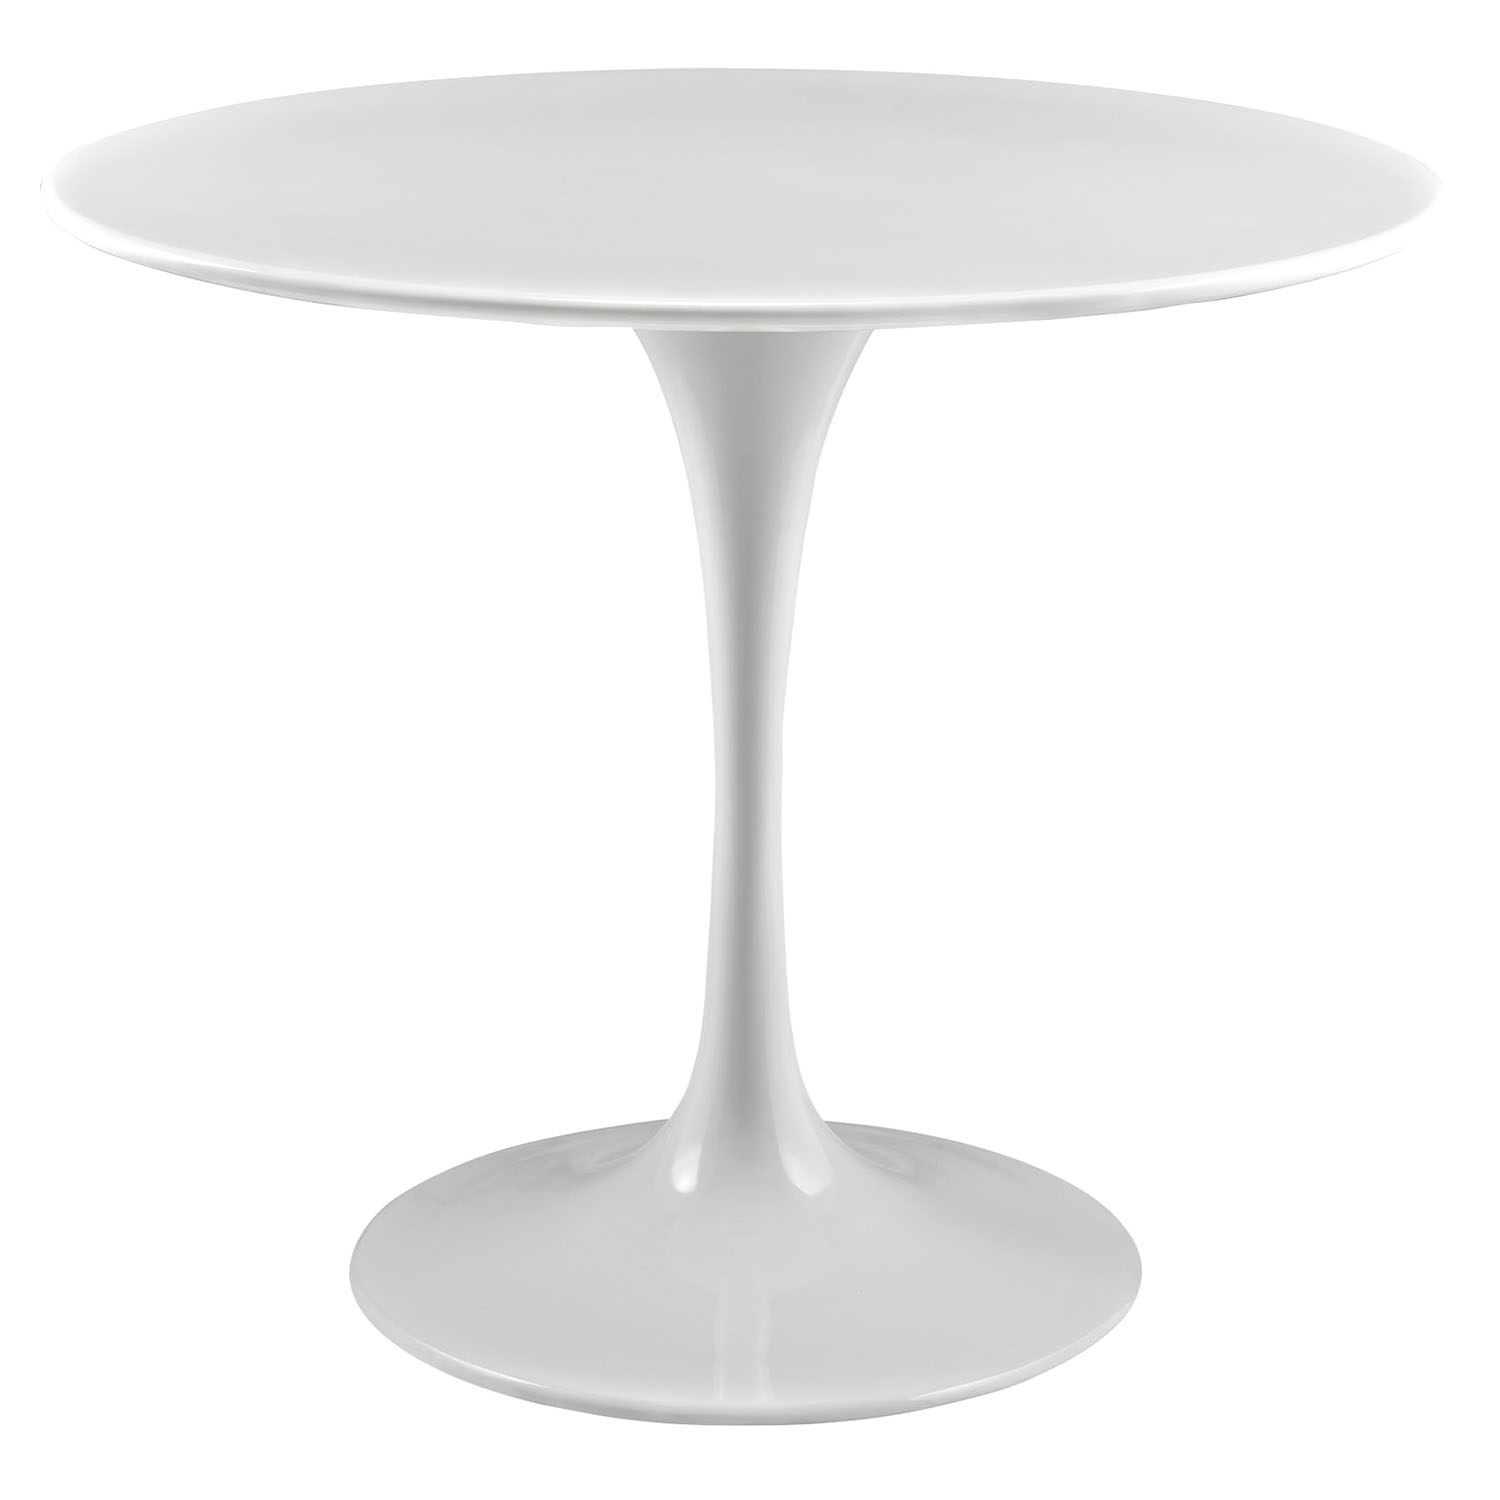 "Lippa 36"" Wood Top Dining Table - White - EEI-1116-WHI"